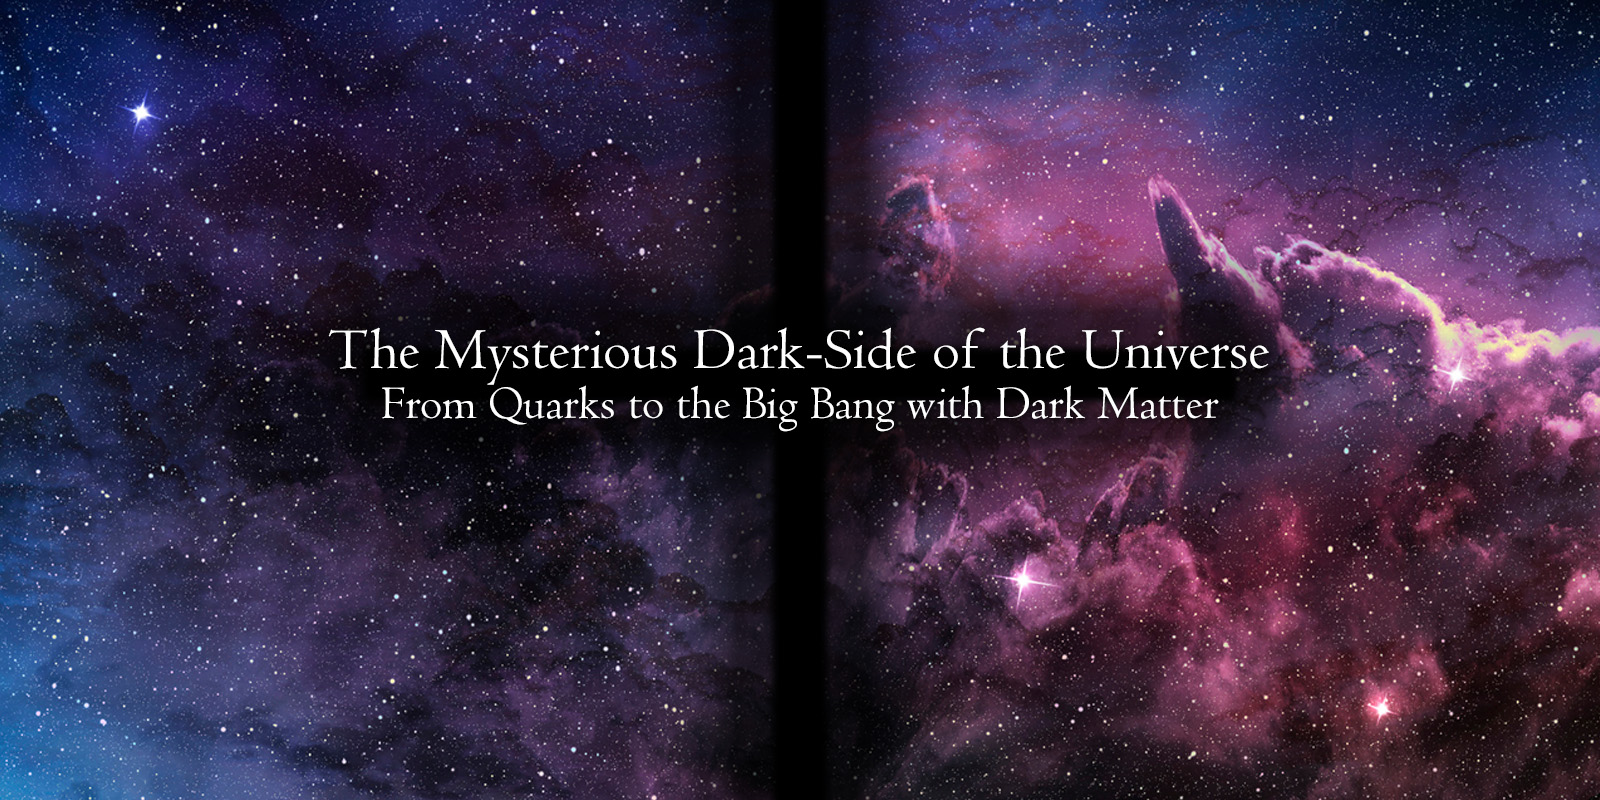 The Mysterious Dark-Side of the Universe